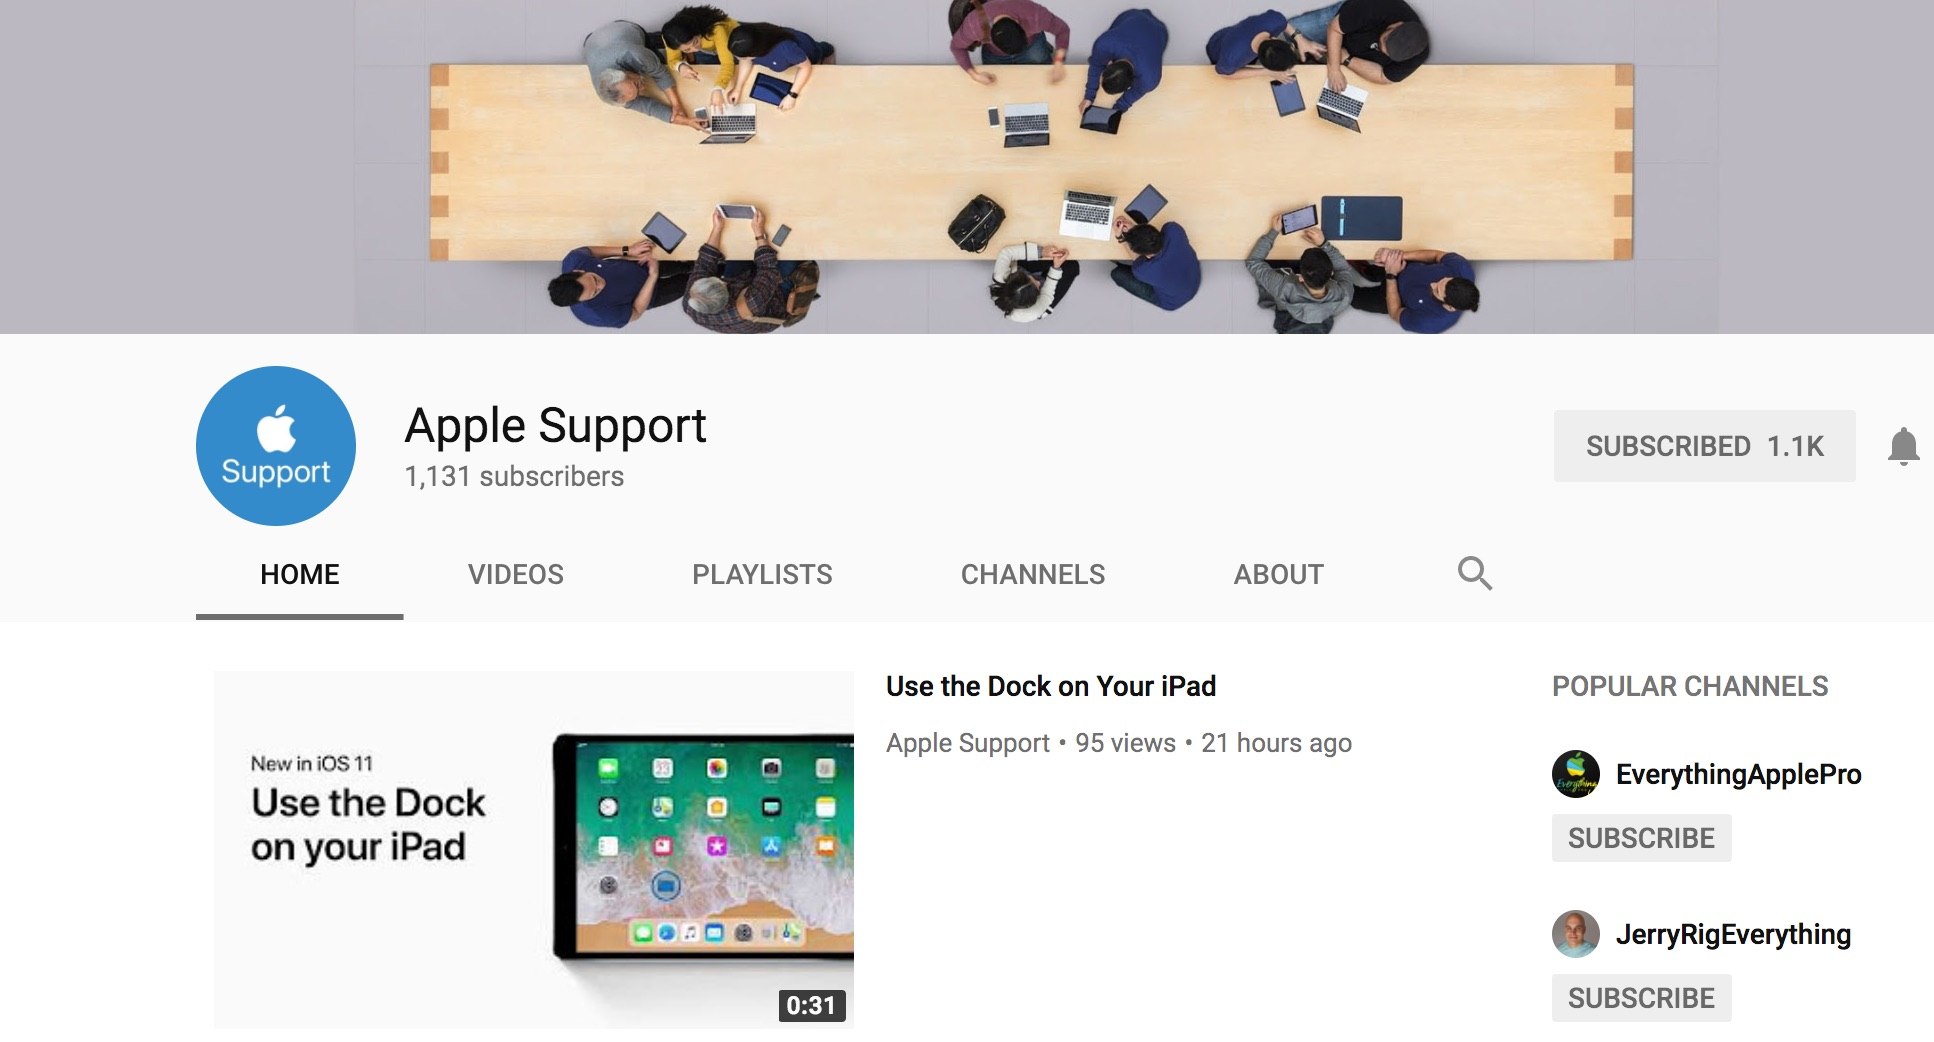 Apple Support YouTube Channel Launches - Features iOS Tips and Tricks Videos